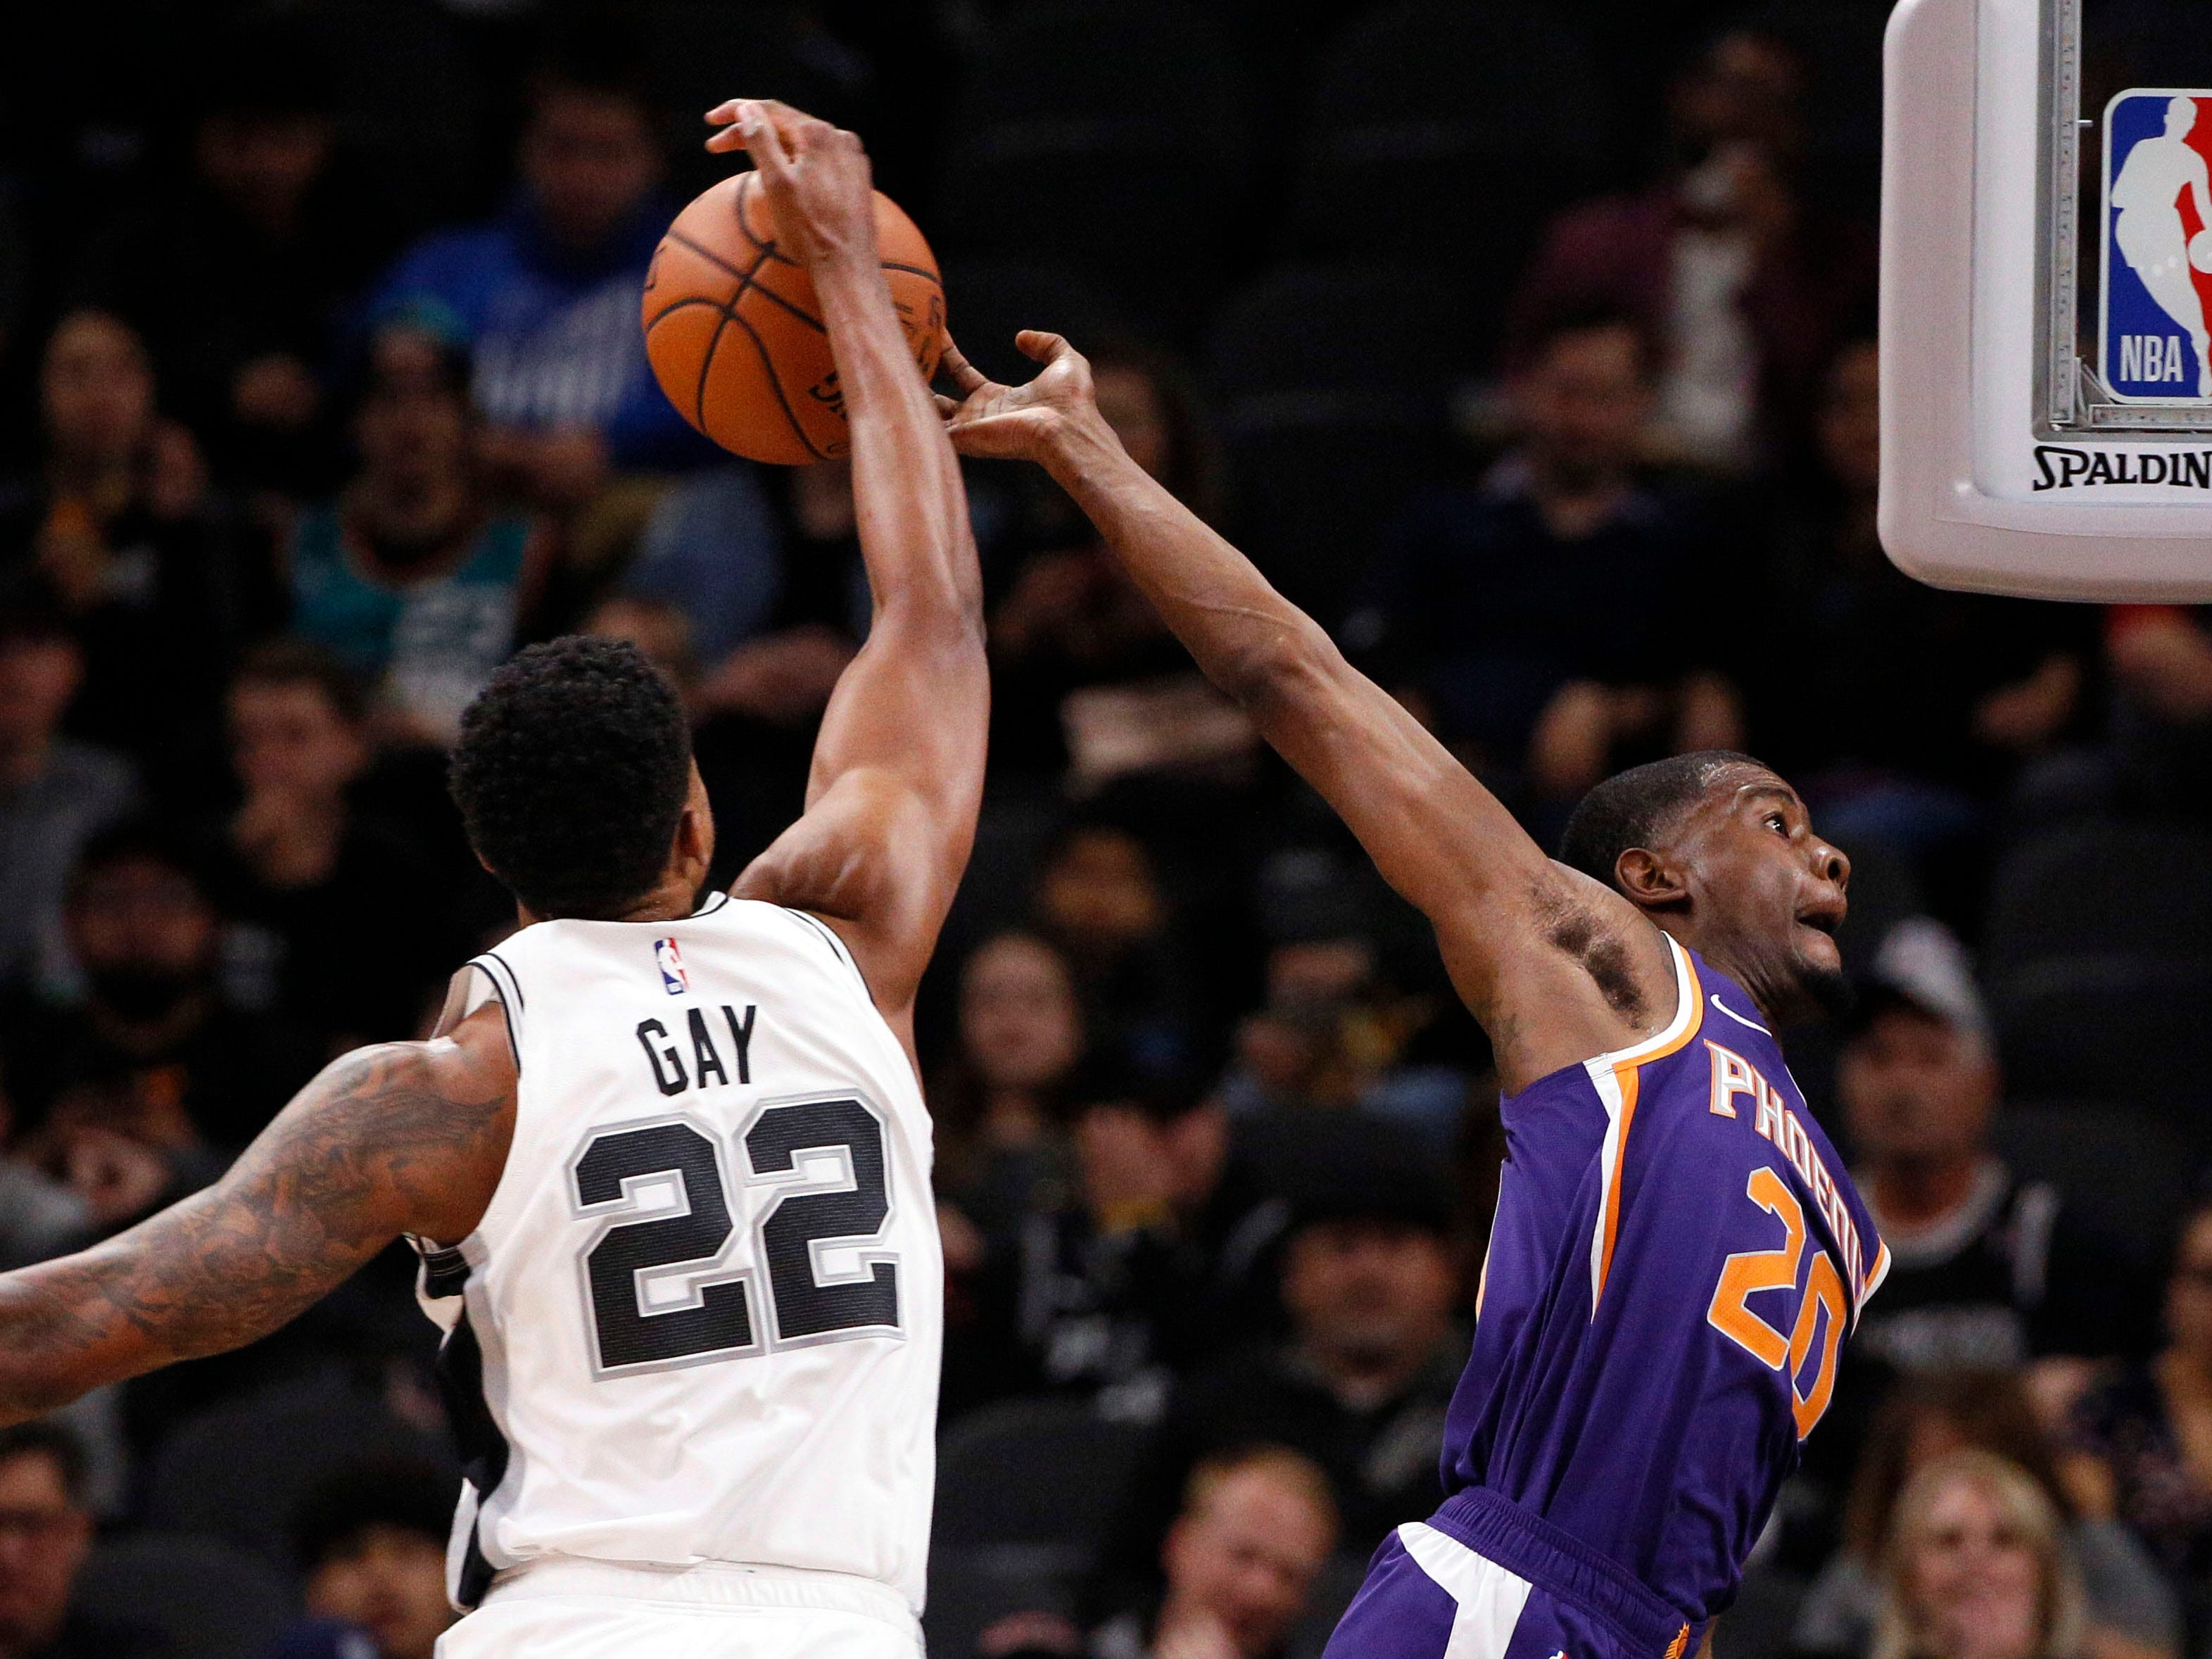 Dec 11, 2018; San Antonio, TX, USA; Phoenix Suns small forward Josh Jackson (20) has his shot blocked by San Antonio Spurs small forward Rudy Gay (22) during the first half at AT&T Center. Mandatory Credit: Soobum Im-USA TODAY Sports